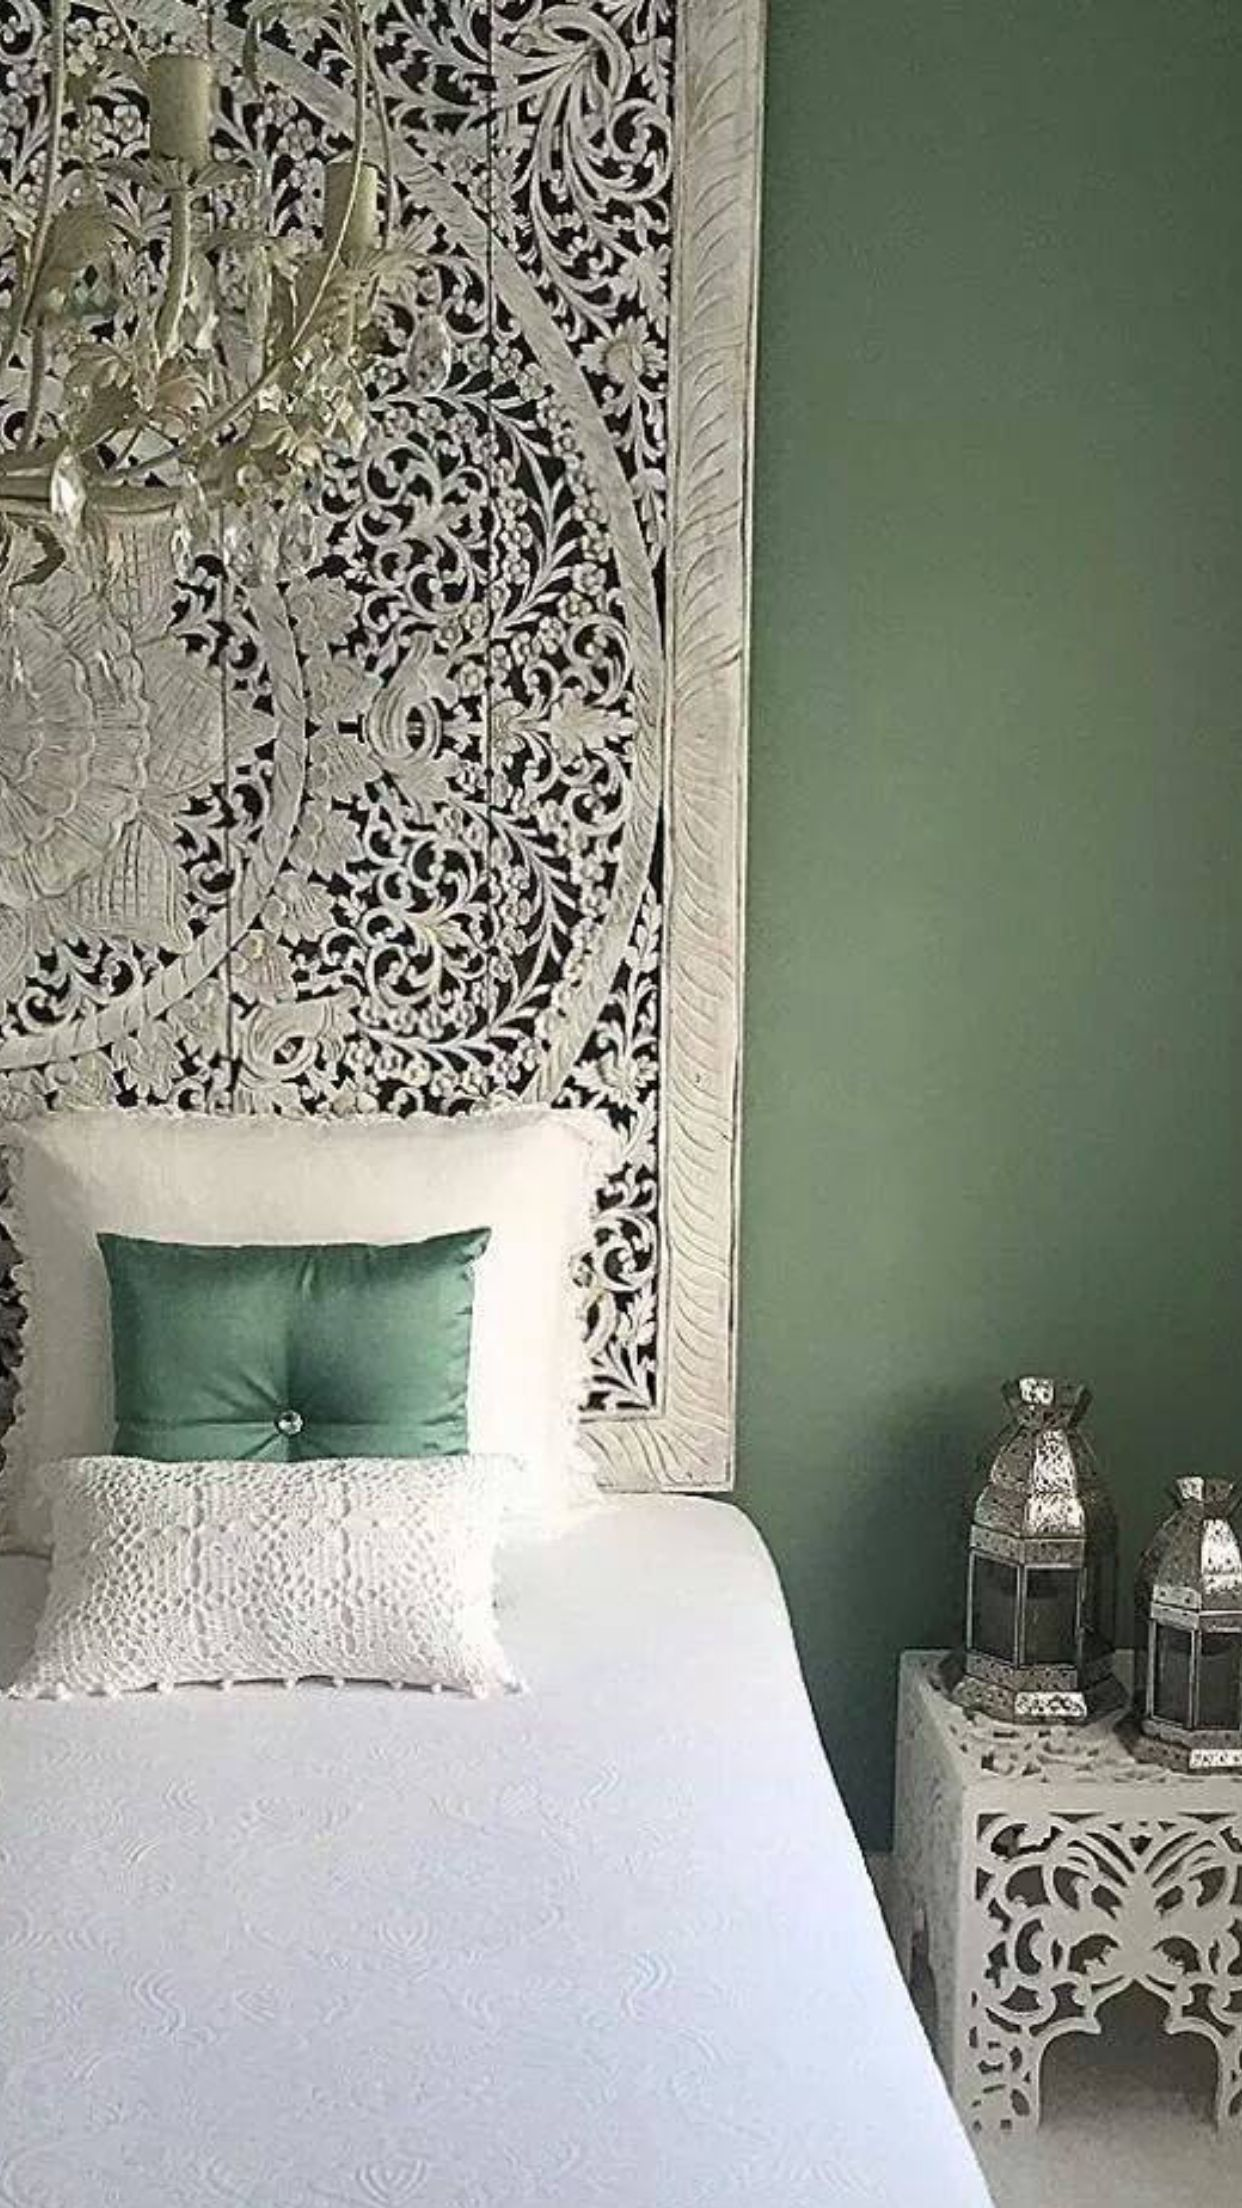 Arabische) Slaapkamer ideeen / idea for s bedroom | interieur ...